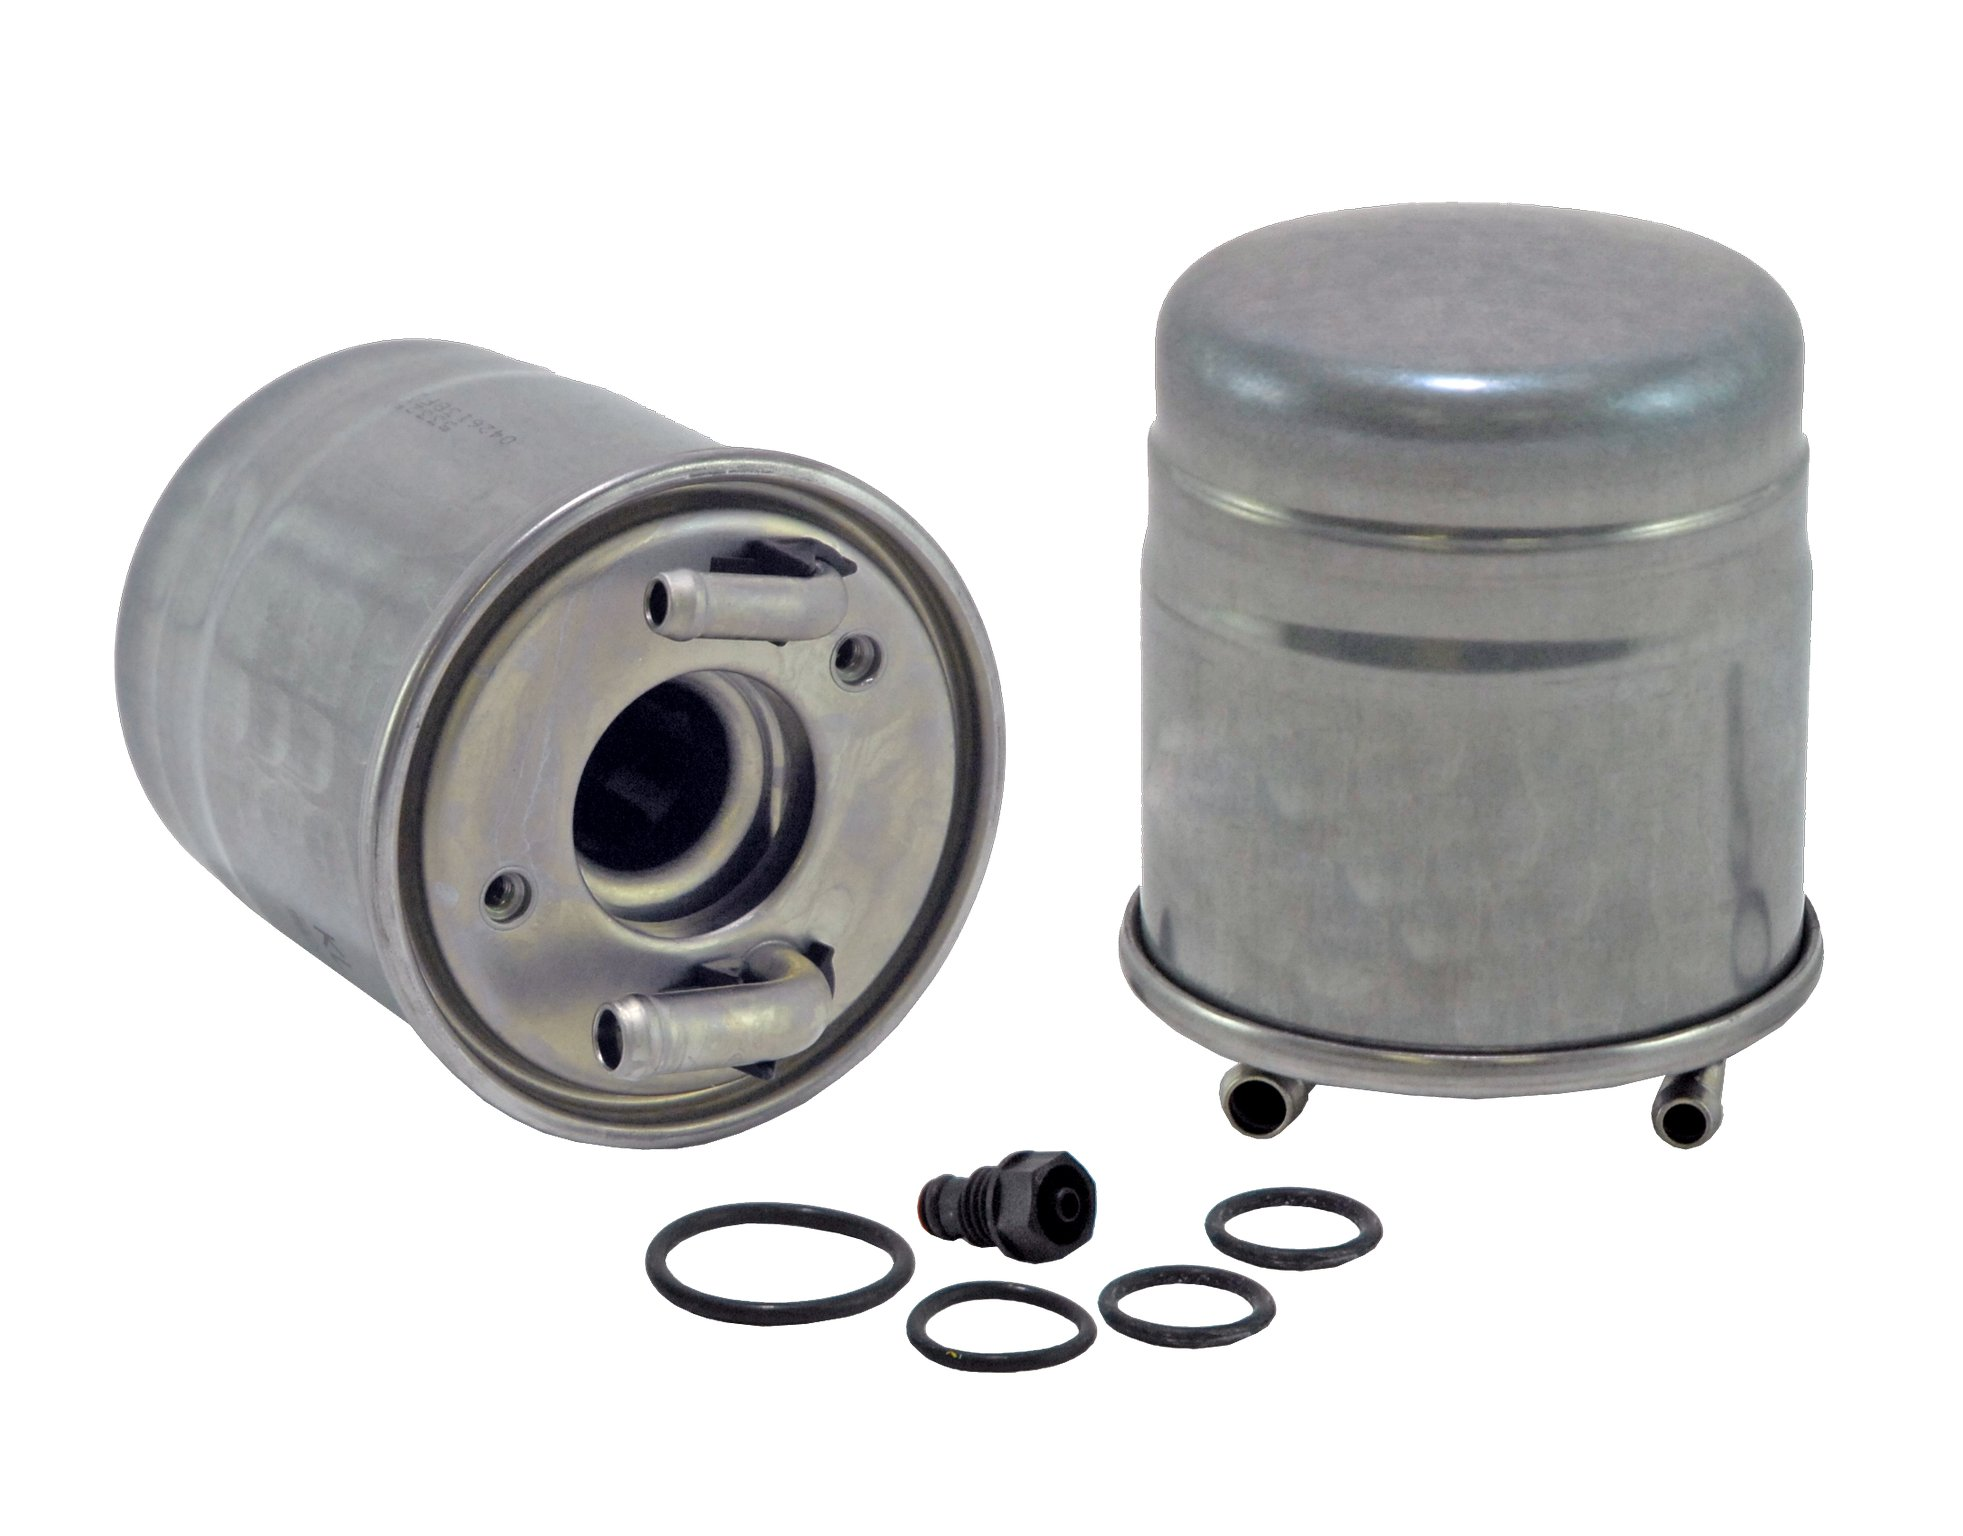 Wix 33250 Fuel Filter for Freightliner Sprinter 2500, Sprinter 3500